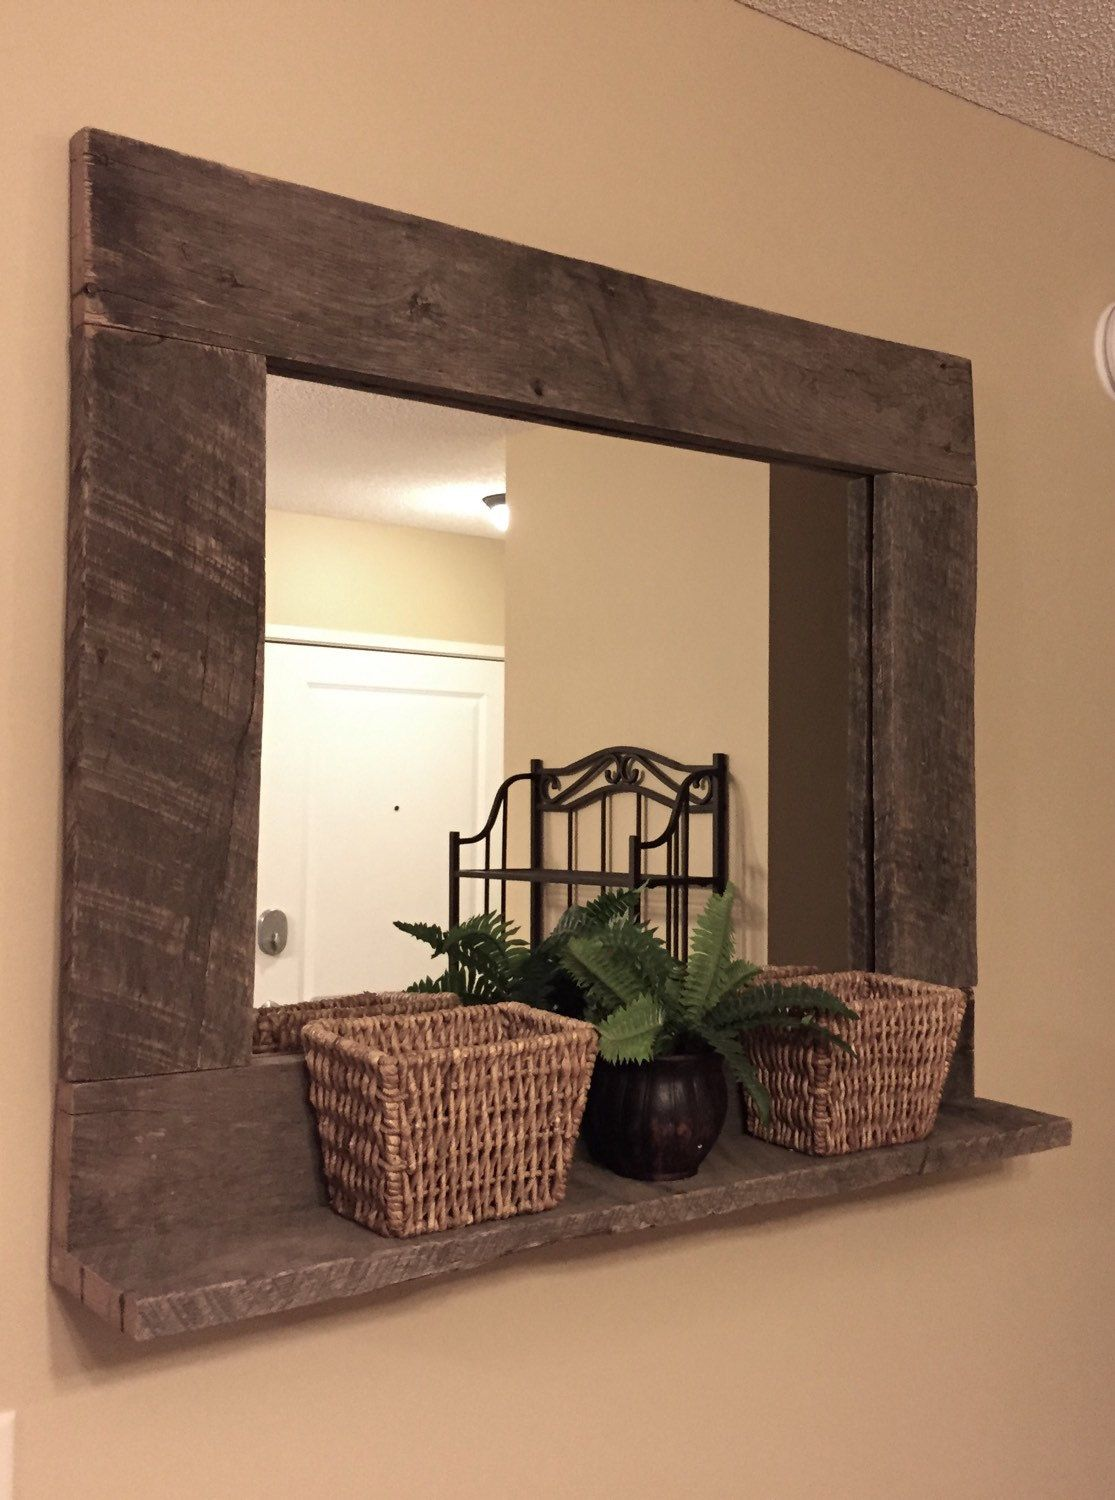 Large Wall Design Ideas decorating with large wall art design large wall decor ideas large wall design ideas Rustic Wood Mirror Pallet Furniture Rustic Home Decor Reclaimed Pallet Wood Large Wall Mirror Hanging Mirror With Shelf